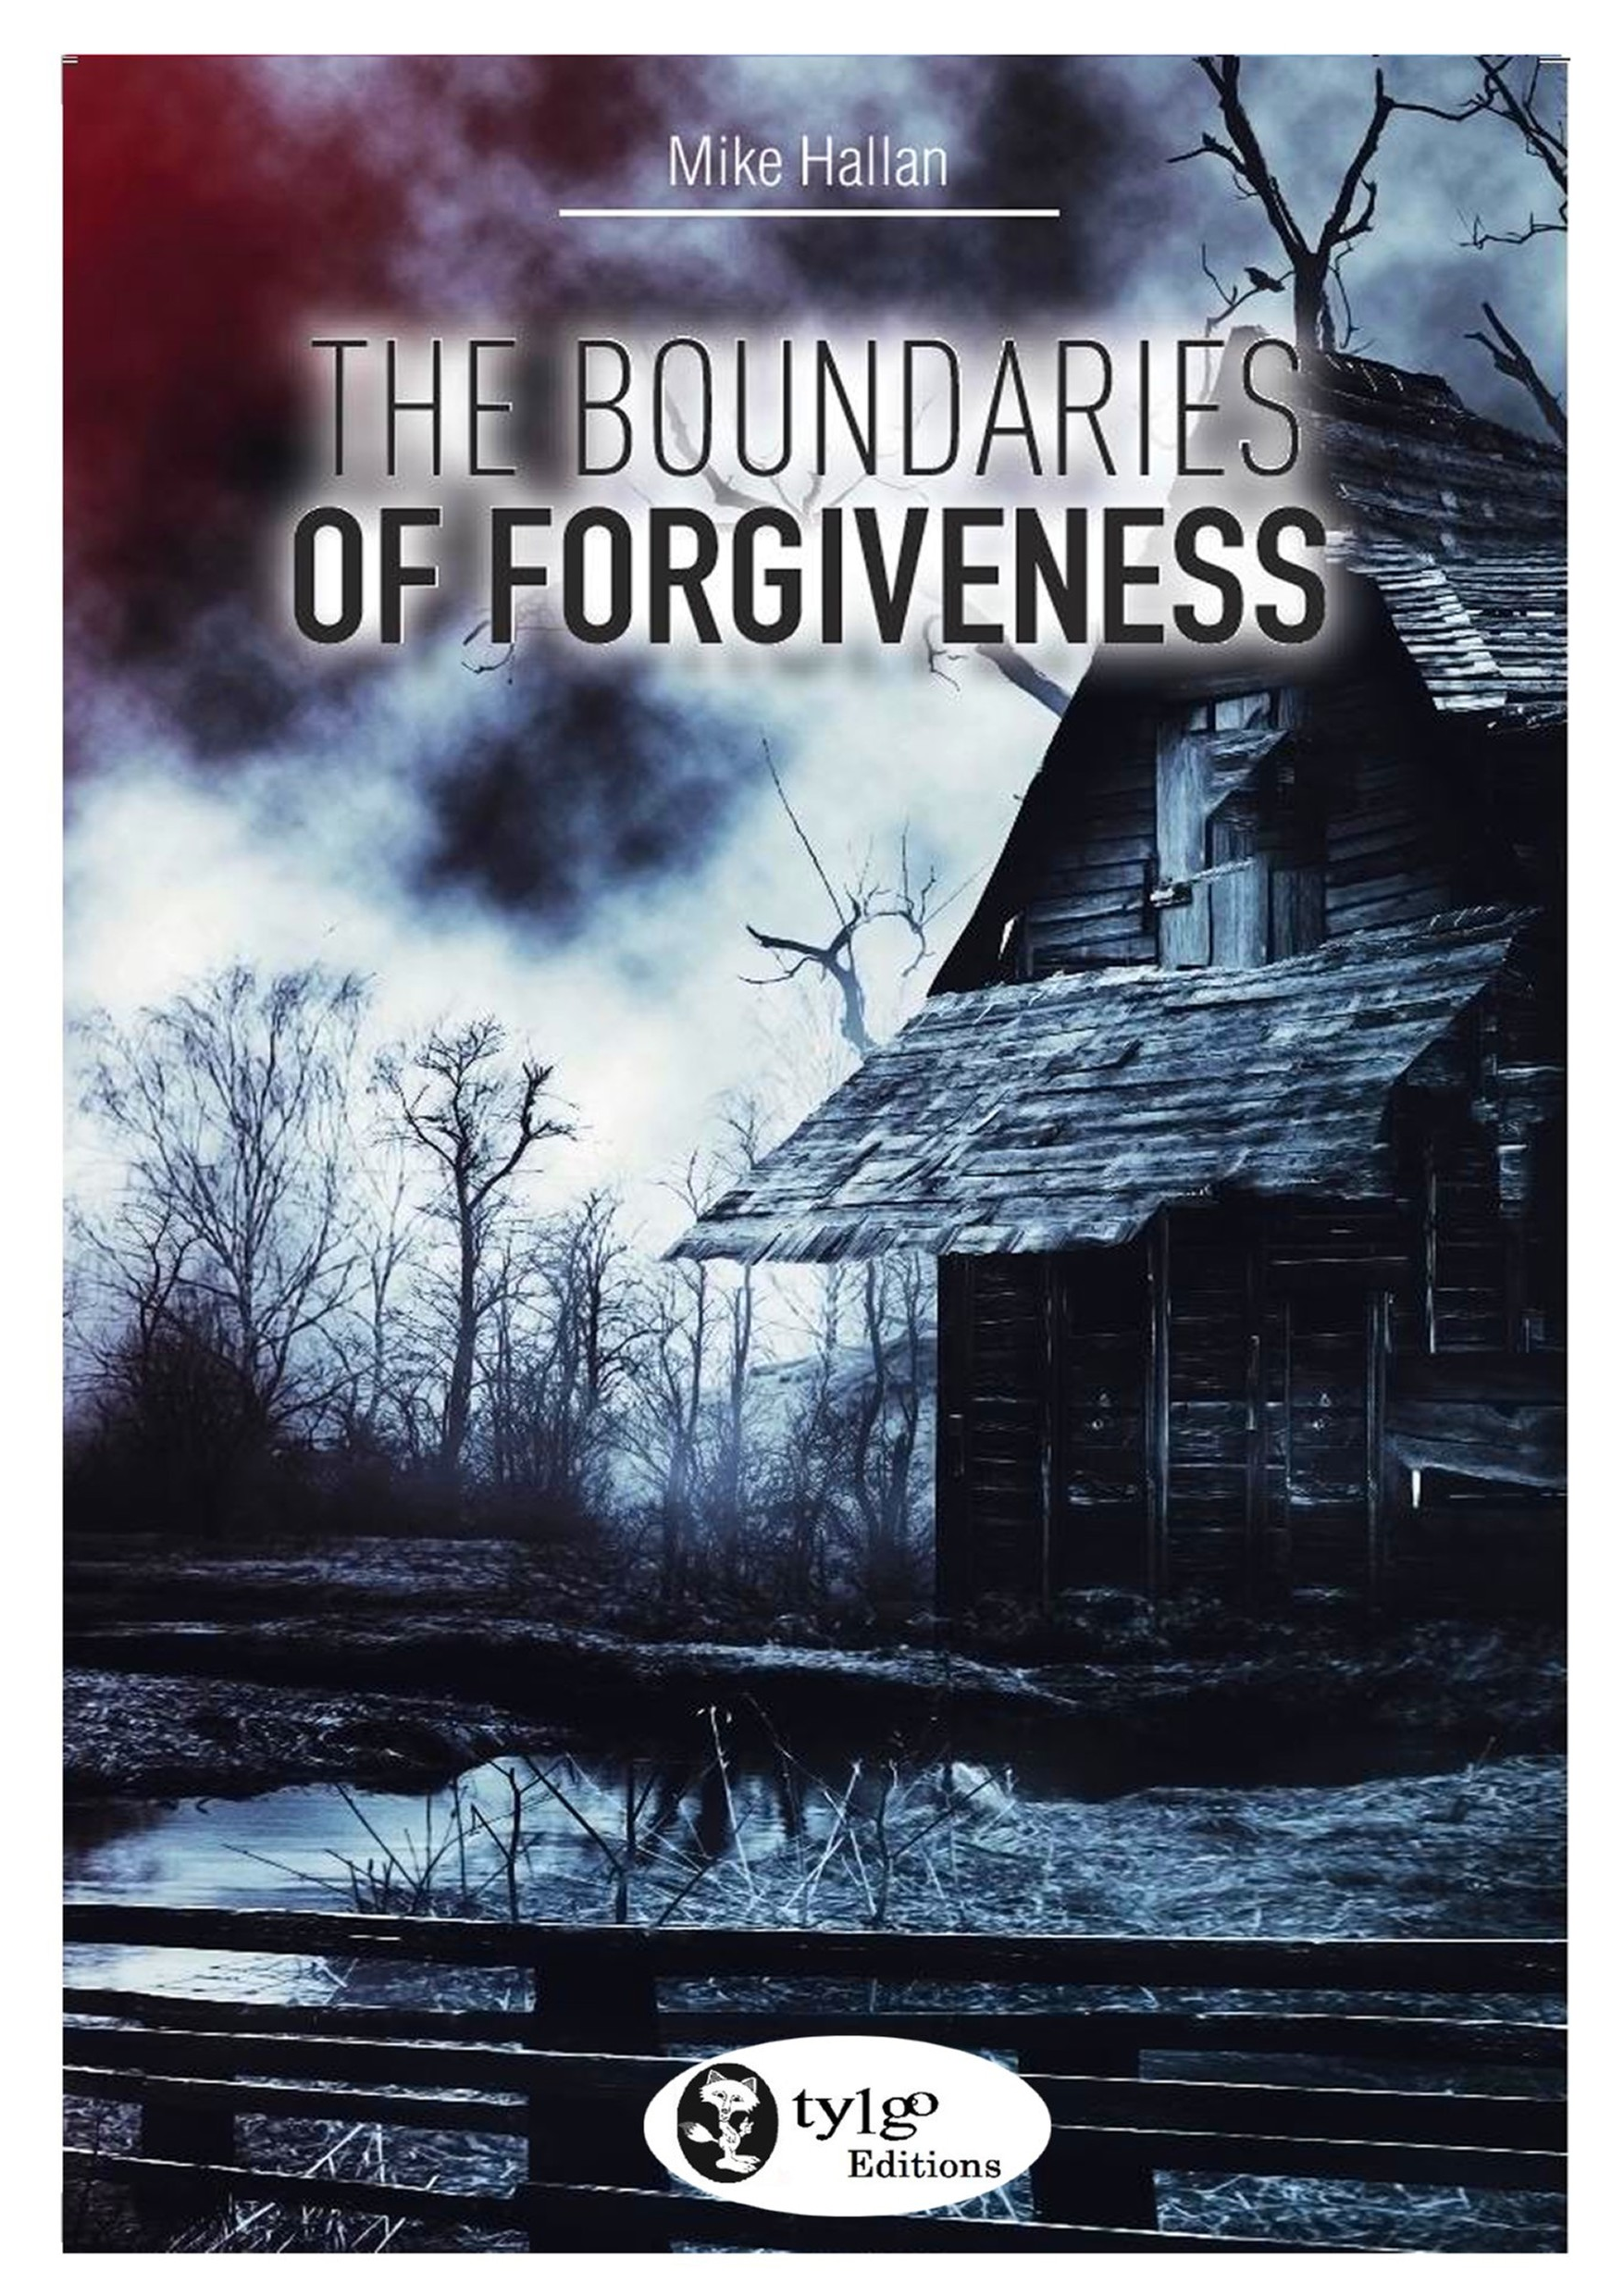 Boundaries of forgiveness